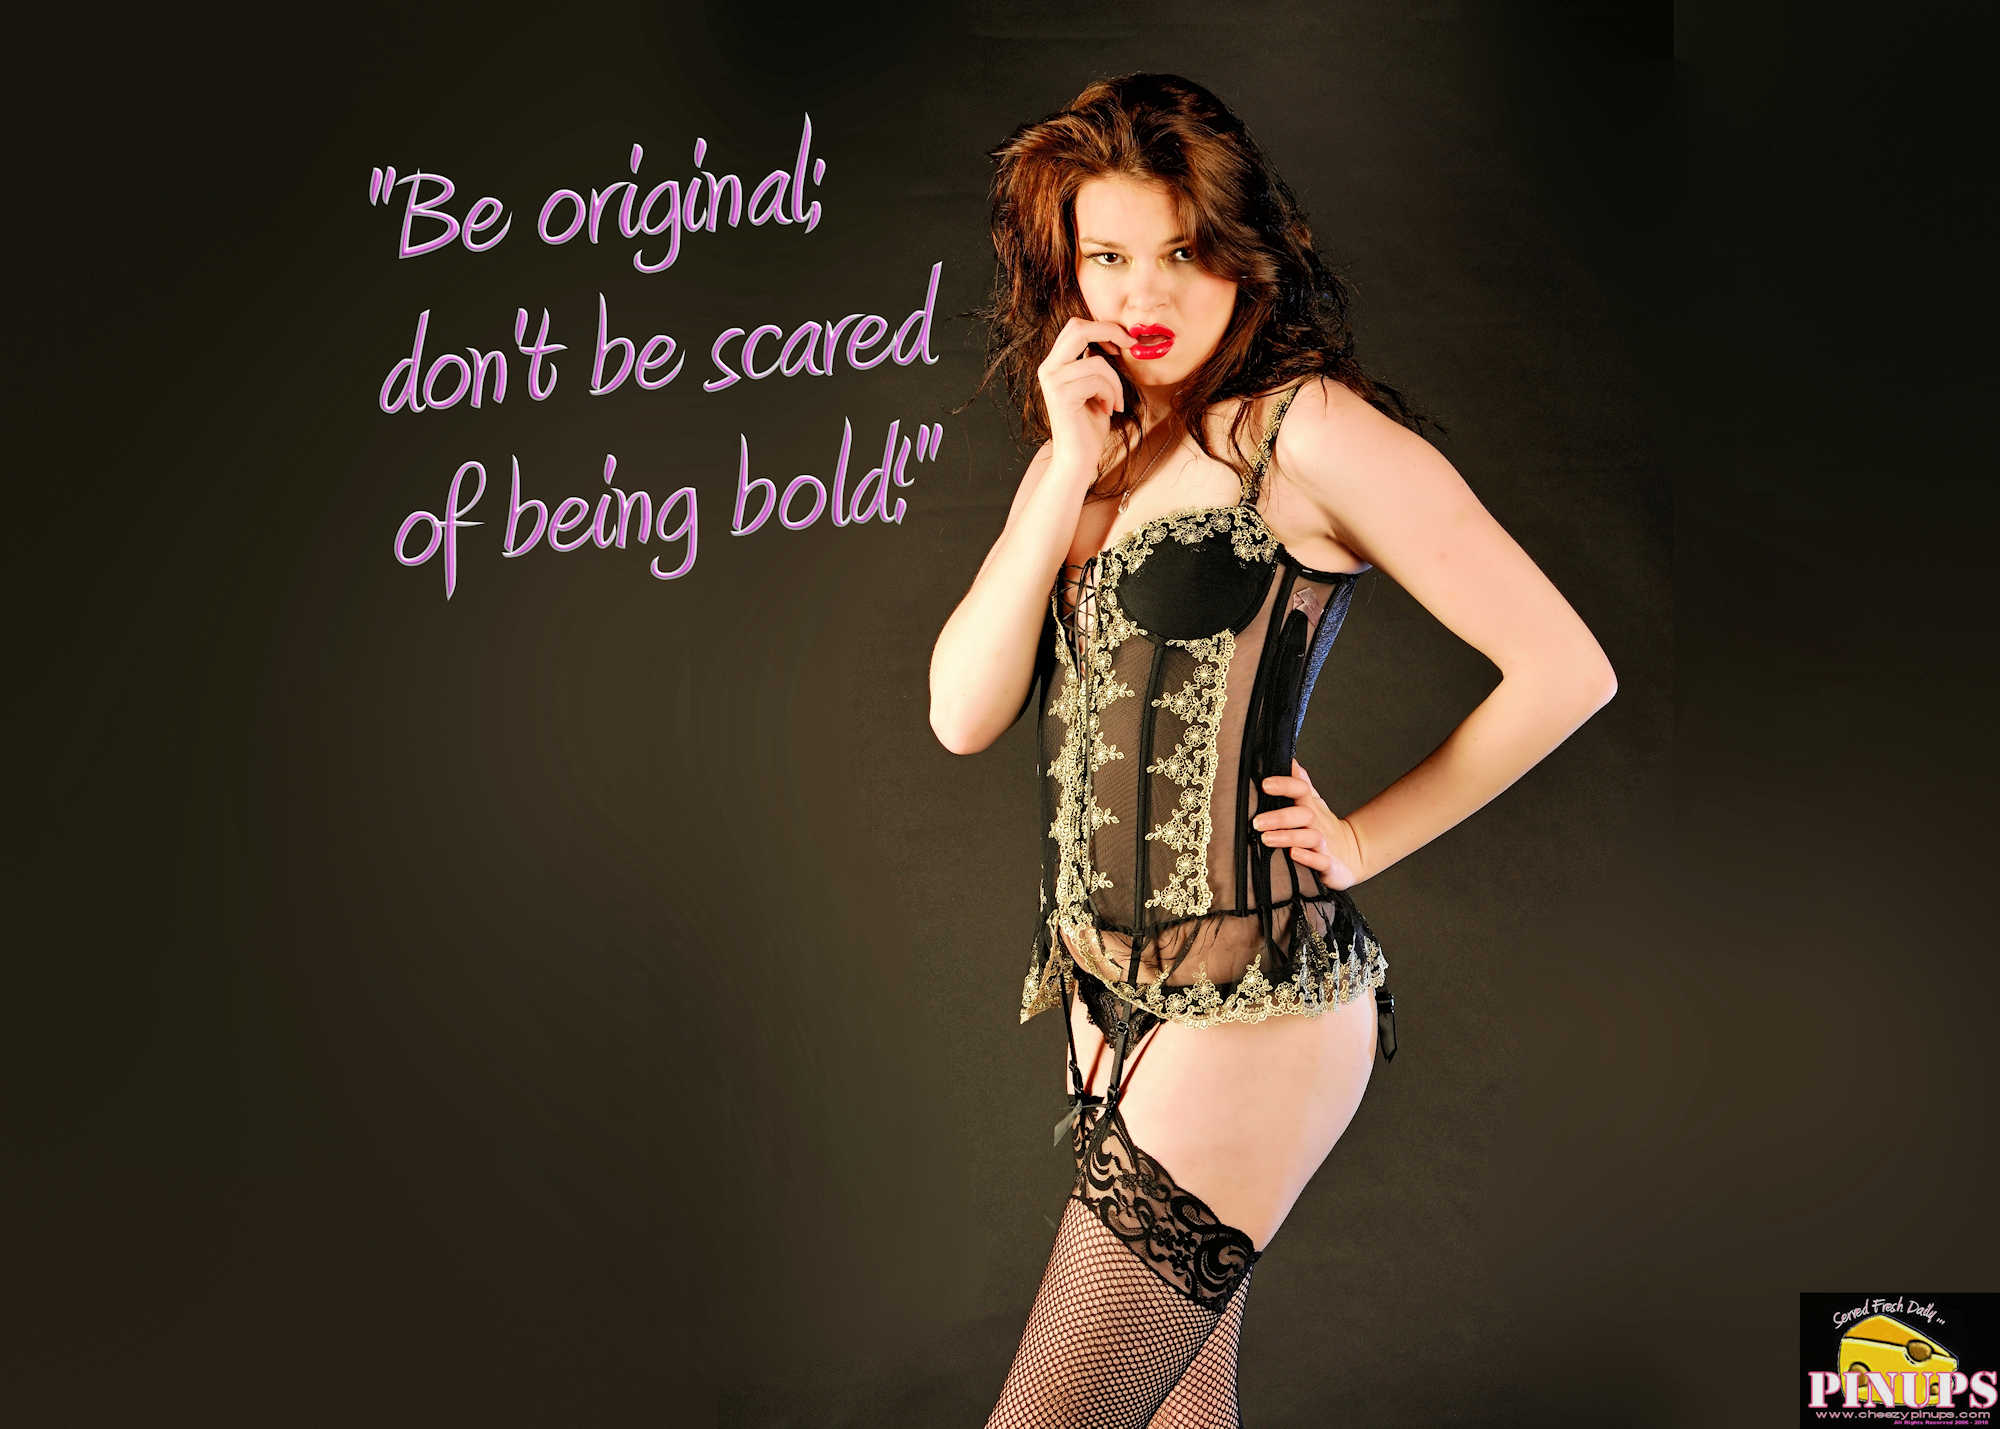 "Cheezy Pinup - February 17, 2018 ""Be original; don't be scared of being bold!"" - Ed Sheeran Model: Scarlett Letter"